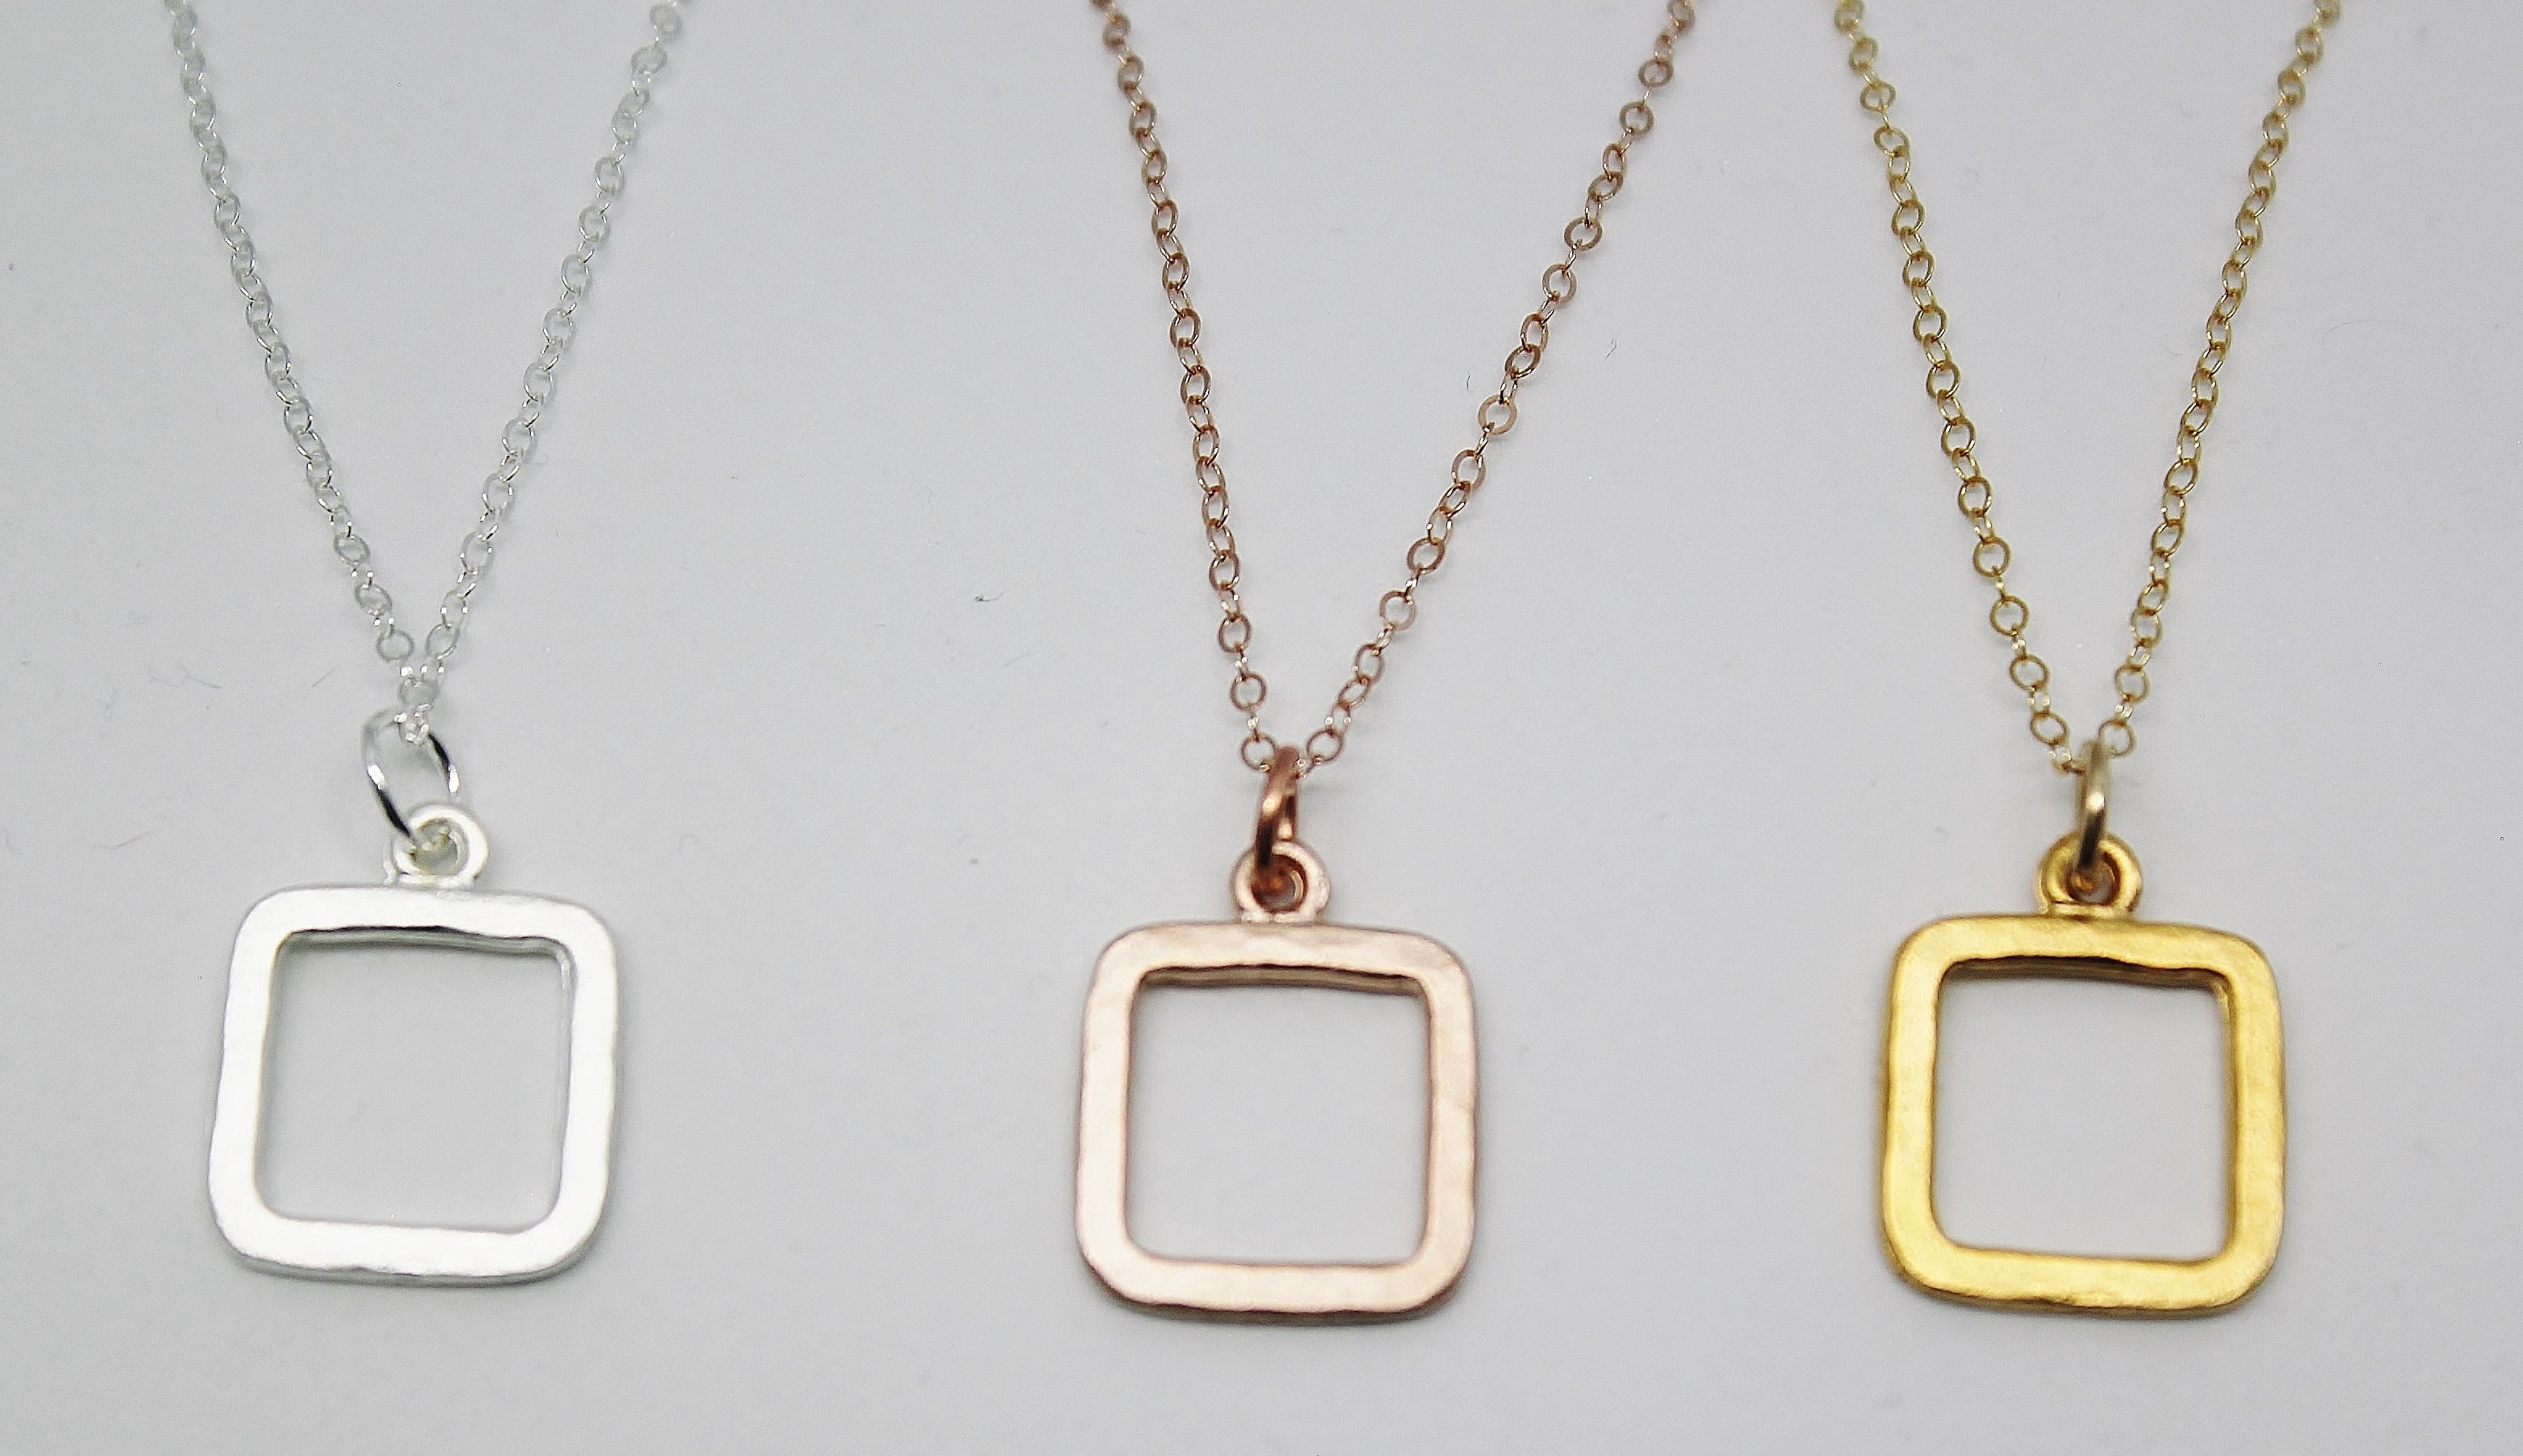 SMALL SQUARE PENDANTS